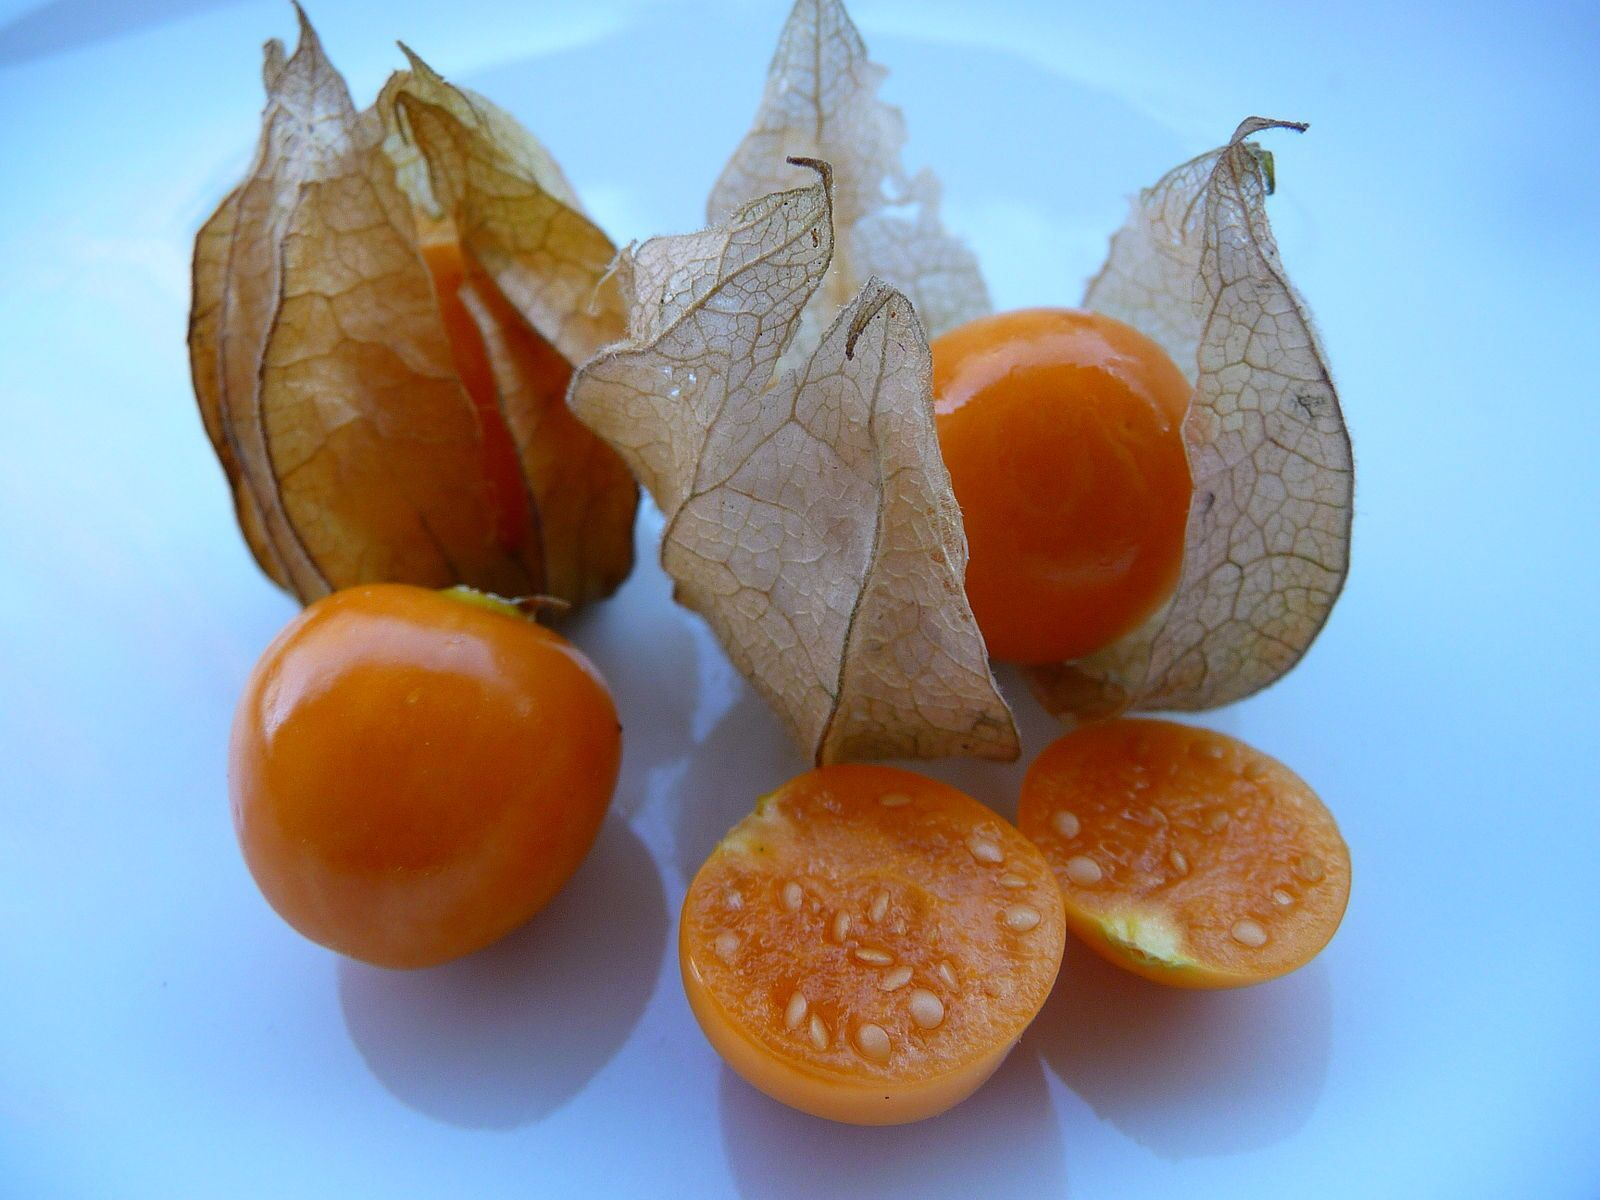 Physalis Gooseberry Also Called Maccoi In Hindi Which We Ate As Kids In India Grown By Our Grandfather In His Terra Cape Gooseberry Physalis Fruit Benefits